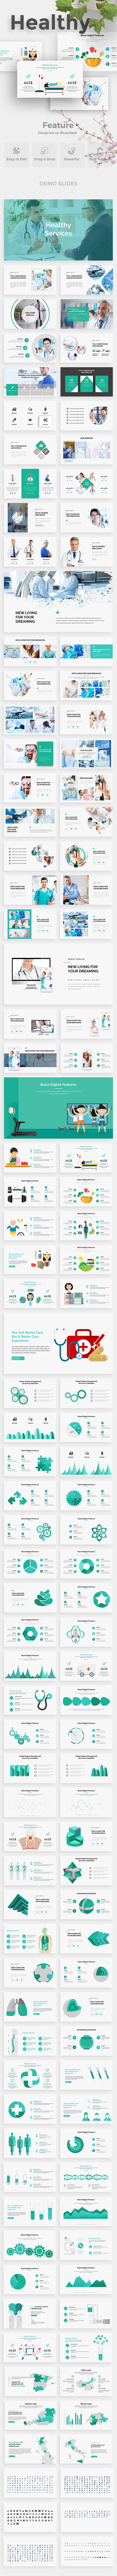 Healthy Services Google Slide Template - Google Slides Presentation Templates